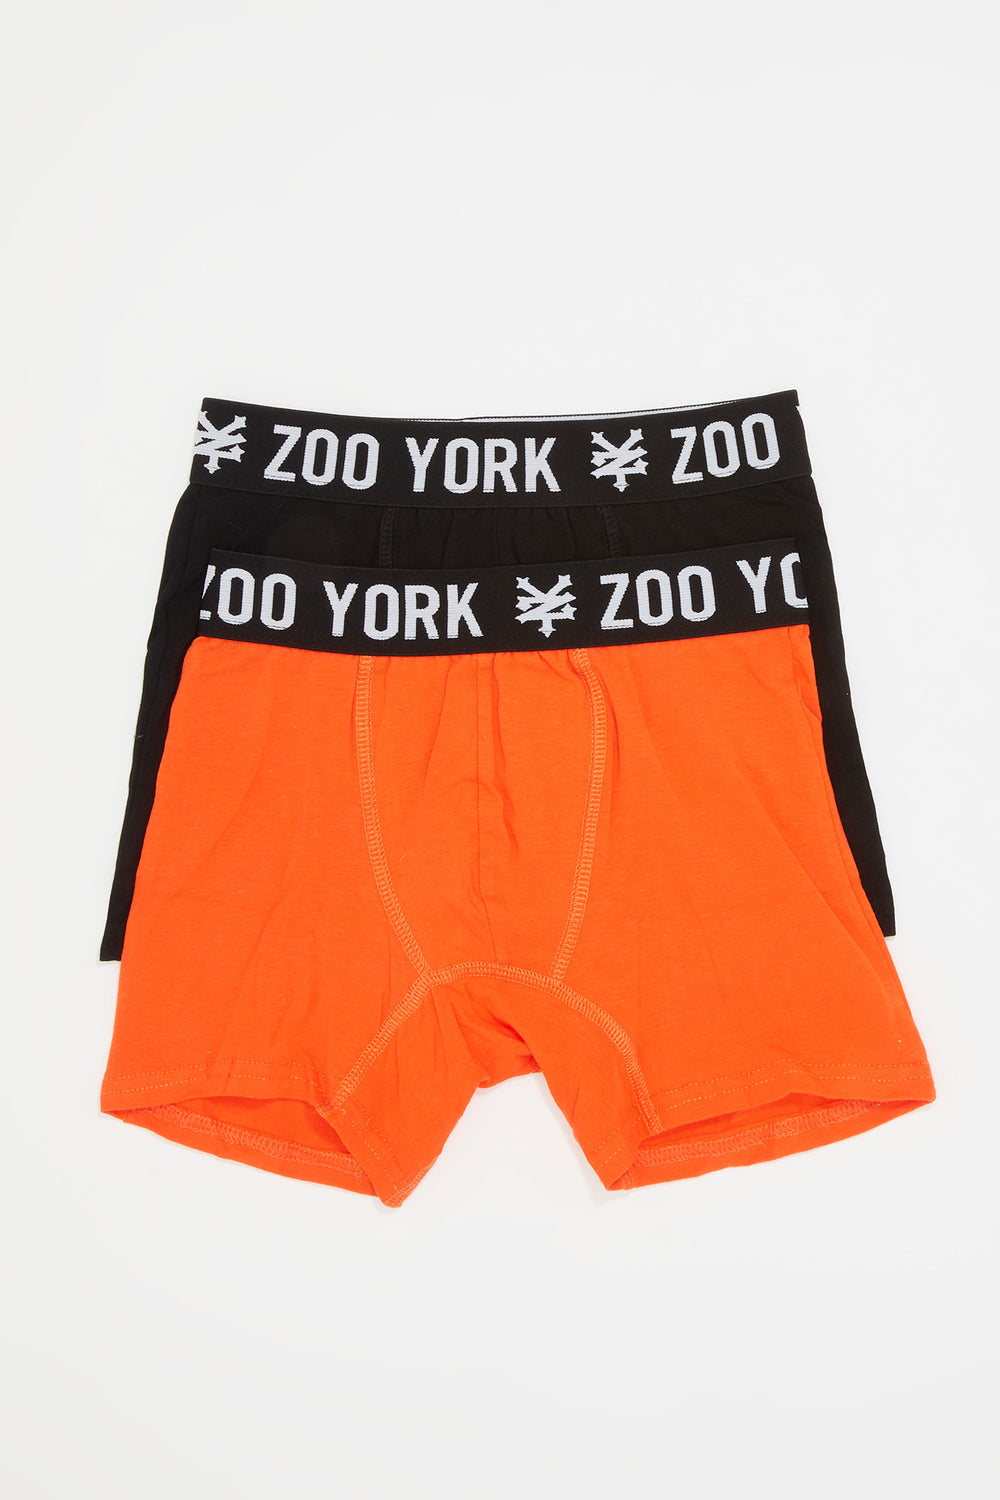 Zoo York Mens 2-Pack Cotton Boxer Briefs Orange